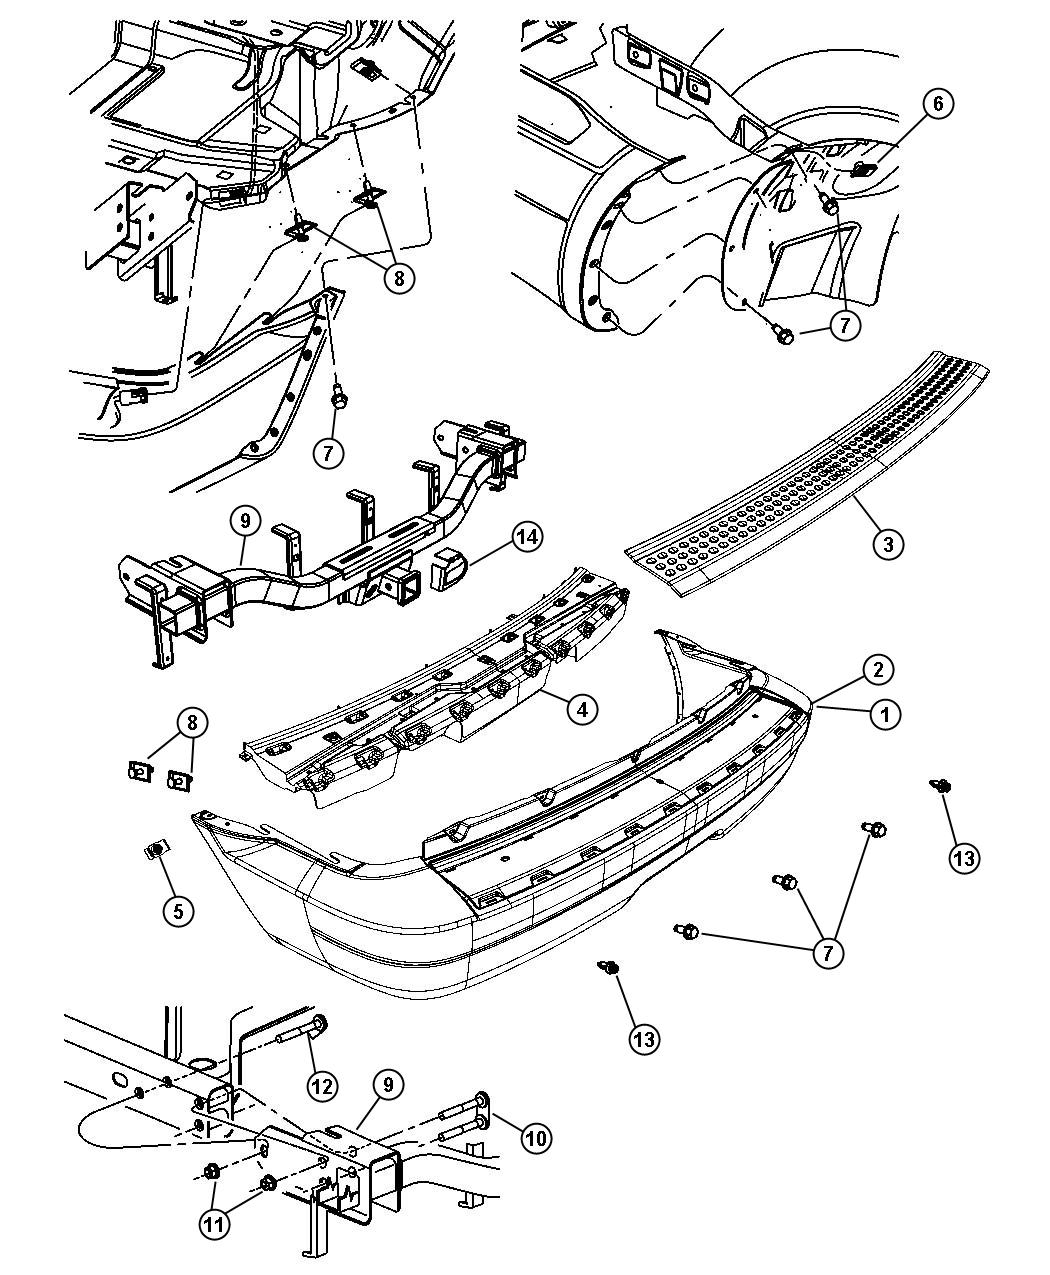 2004 dodge durango rear bumper parts diagram  dodge  auto